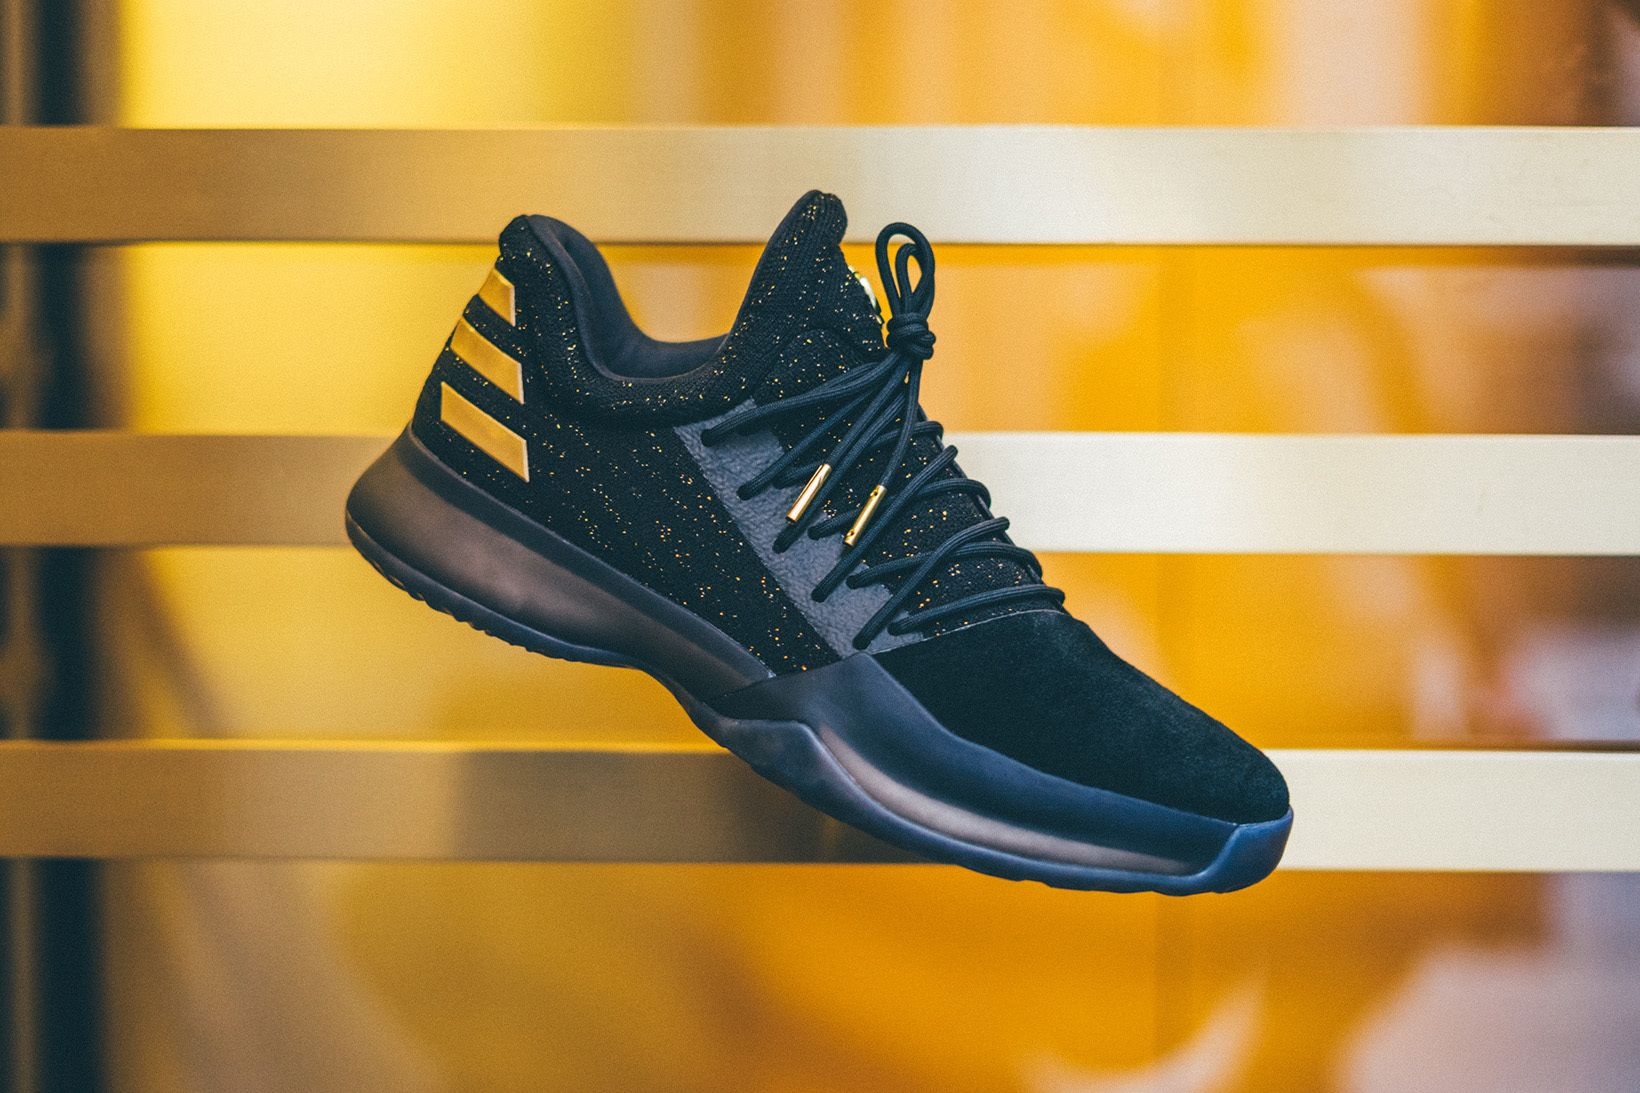 james harden new adidas shoes adidas yeezy boost prices